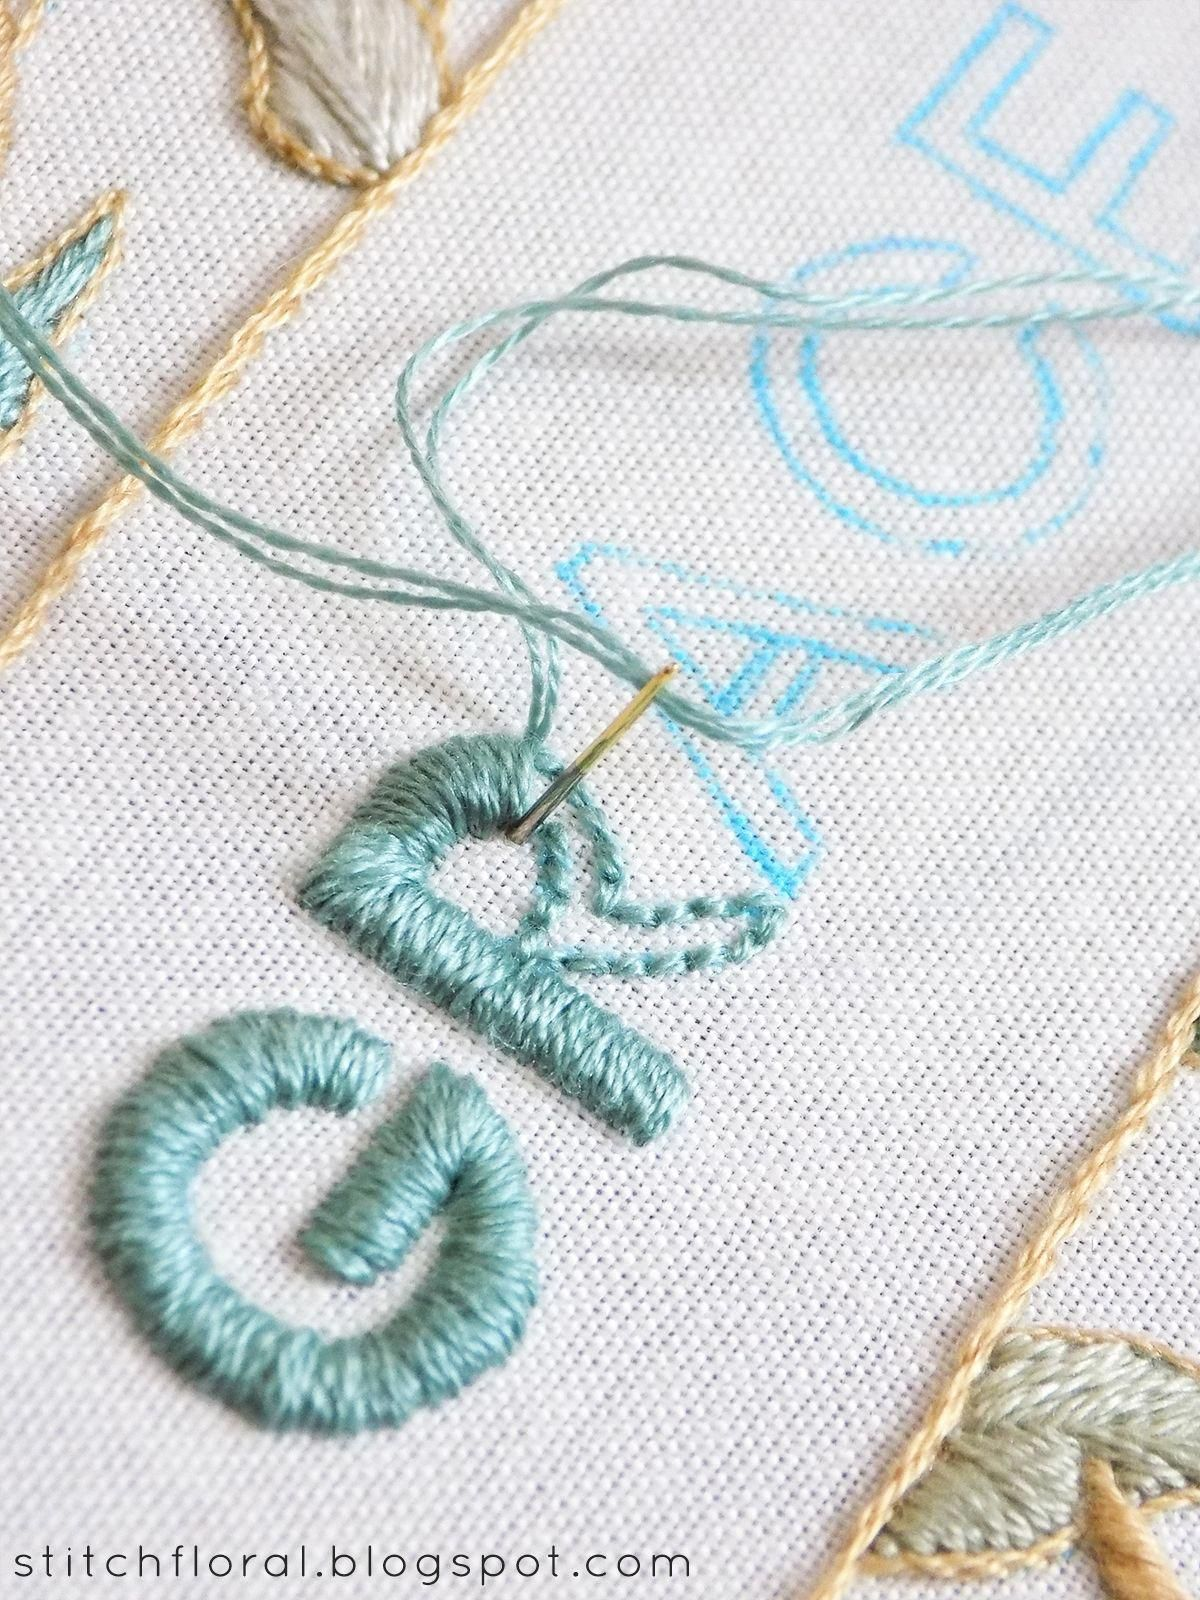 Embroidery Outline Stitch : embroidery, outline, stitch, Outline, Pencil,, Stitch, Outline,, Fill!, #Embroiderystitches, Sewing, Embroidery, Designs,, Tutorials,